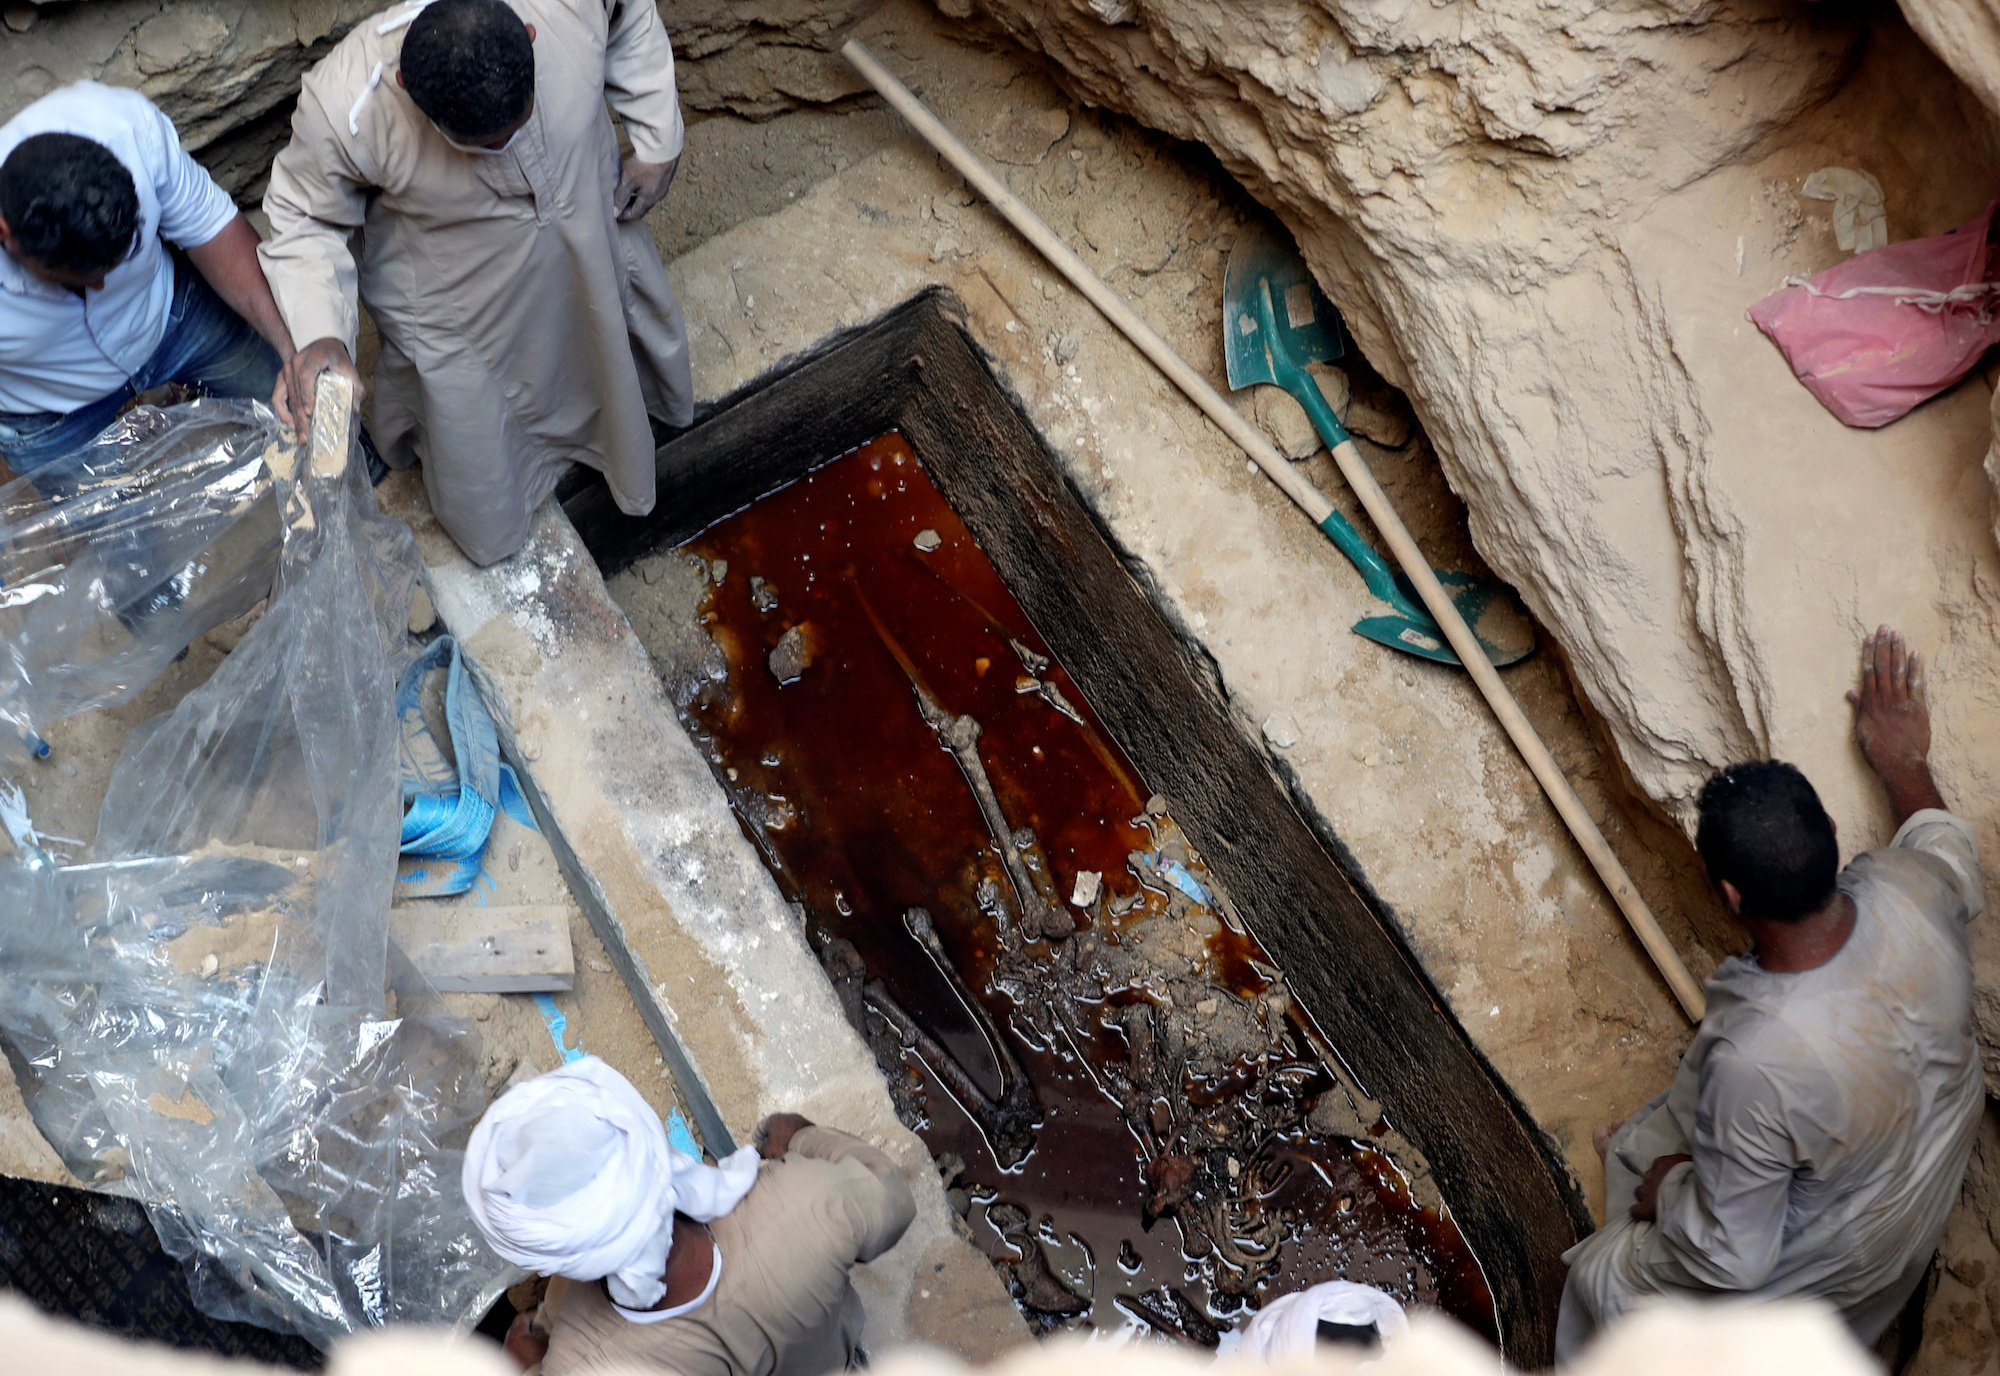 Huge Egyptian sarcophagus found to contain three mummies